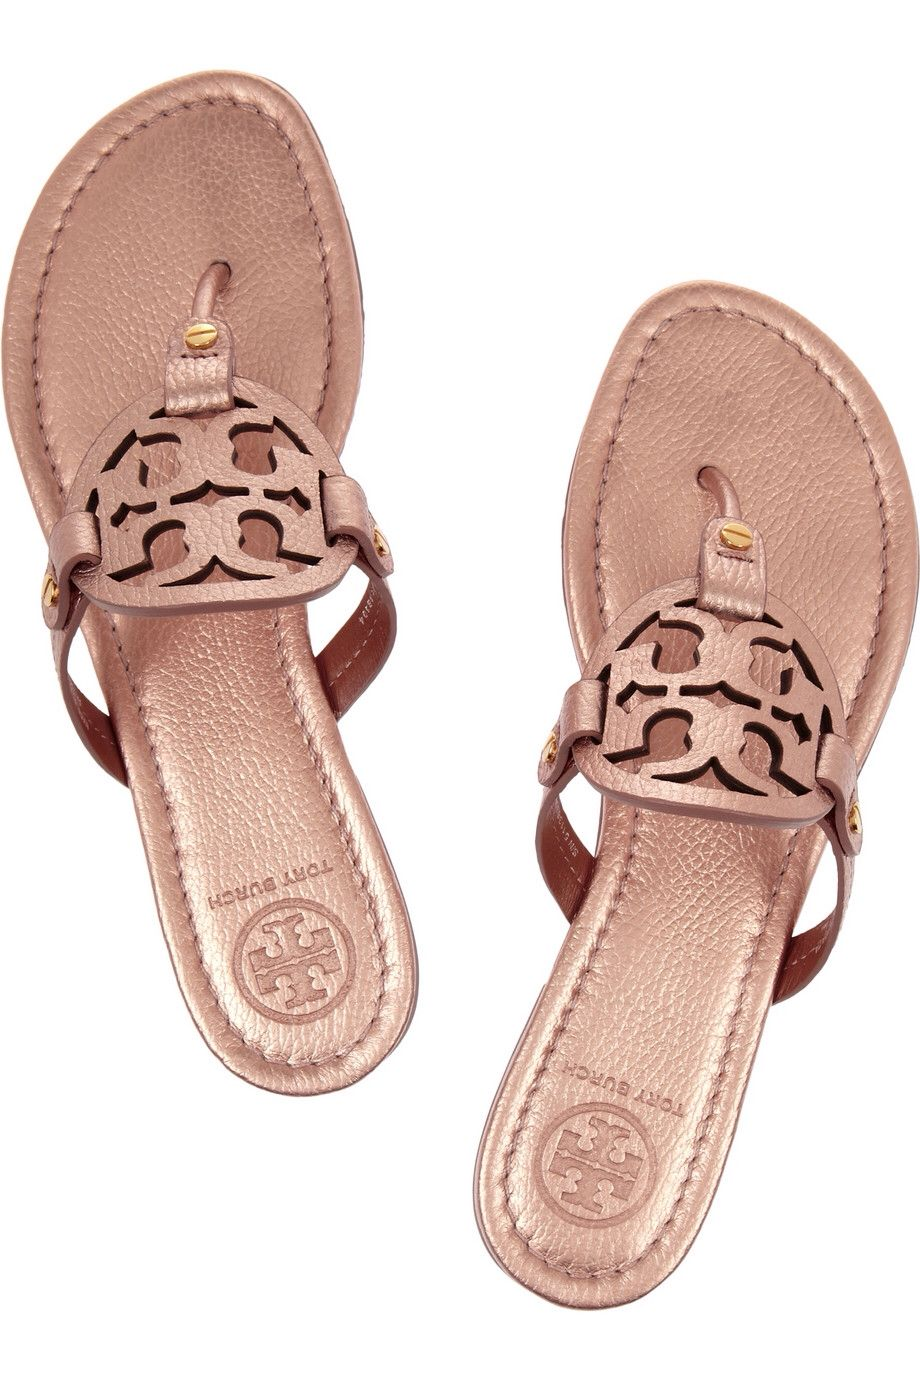 26032b7e8d53 Tory Burch Miller in Rose Gold